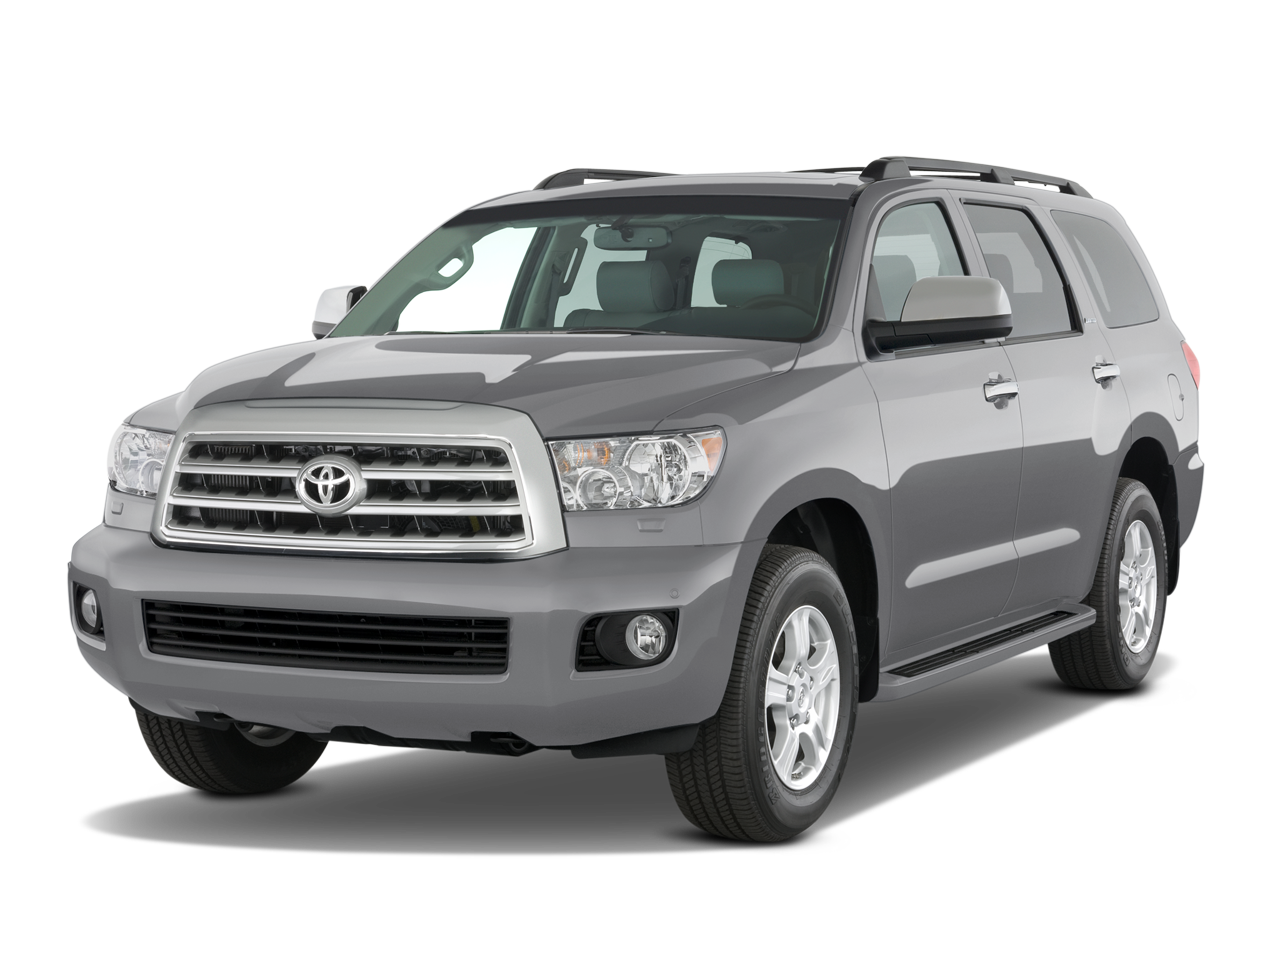 new 2017 toyota sequoia limited near herculaneum mo. Black Bedroom Furniture Sets. Home Design Ideas